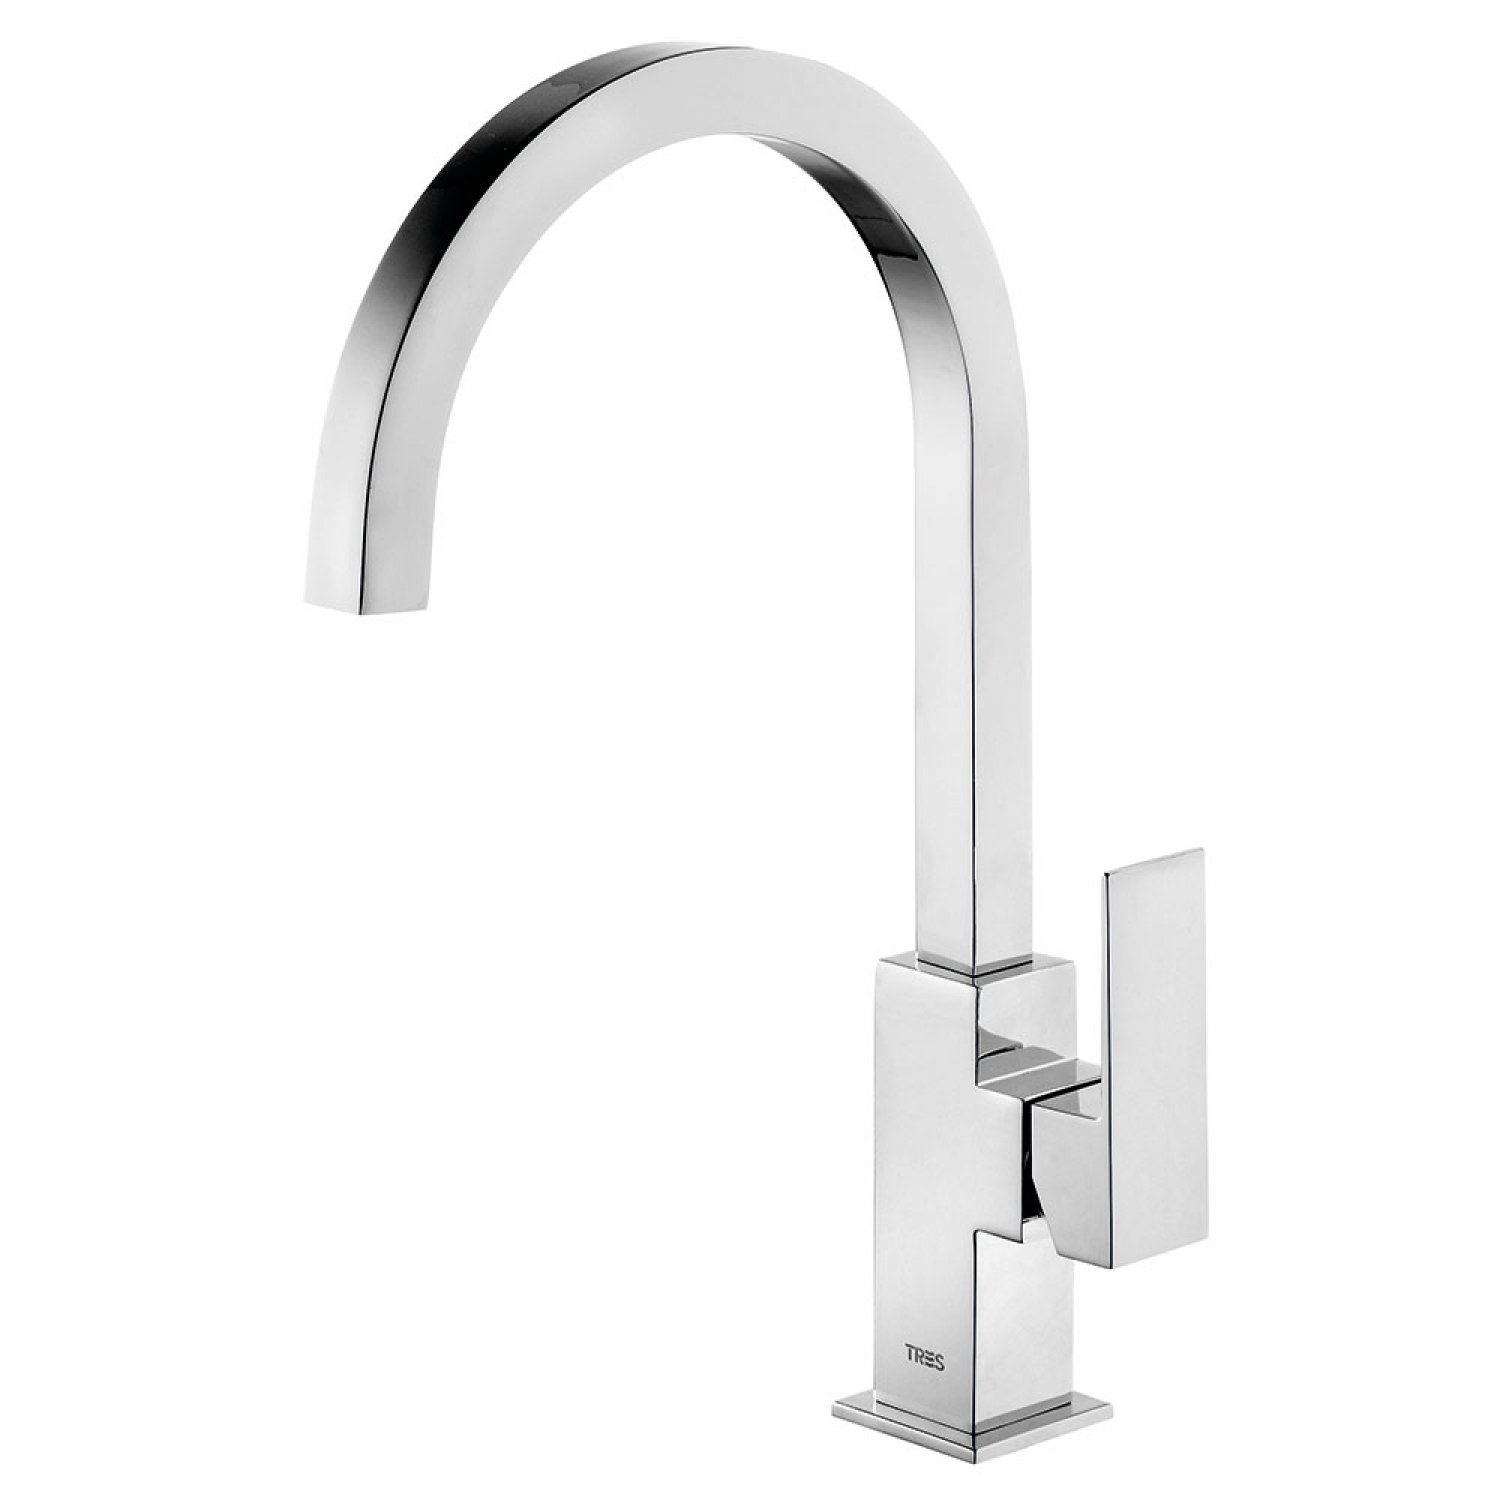 http://desidea.hu/wp-content/uploads/2019/07/Single-lever-washbasin-mixer-106607.jpg